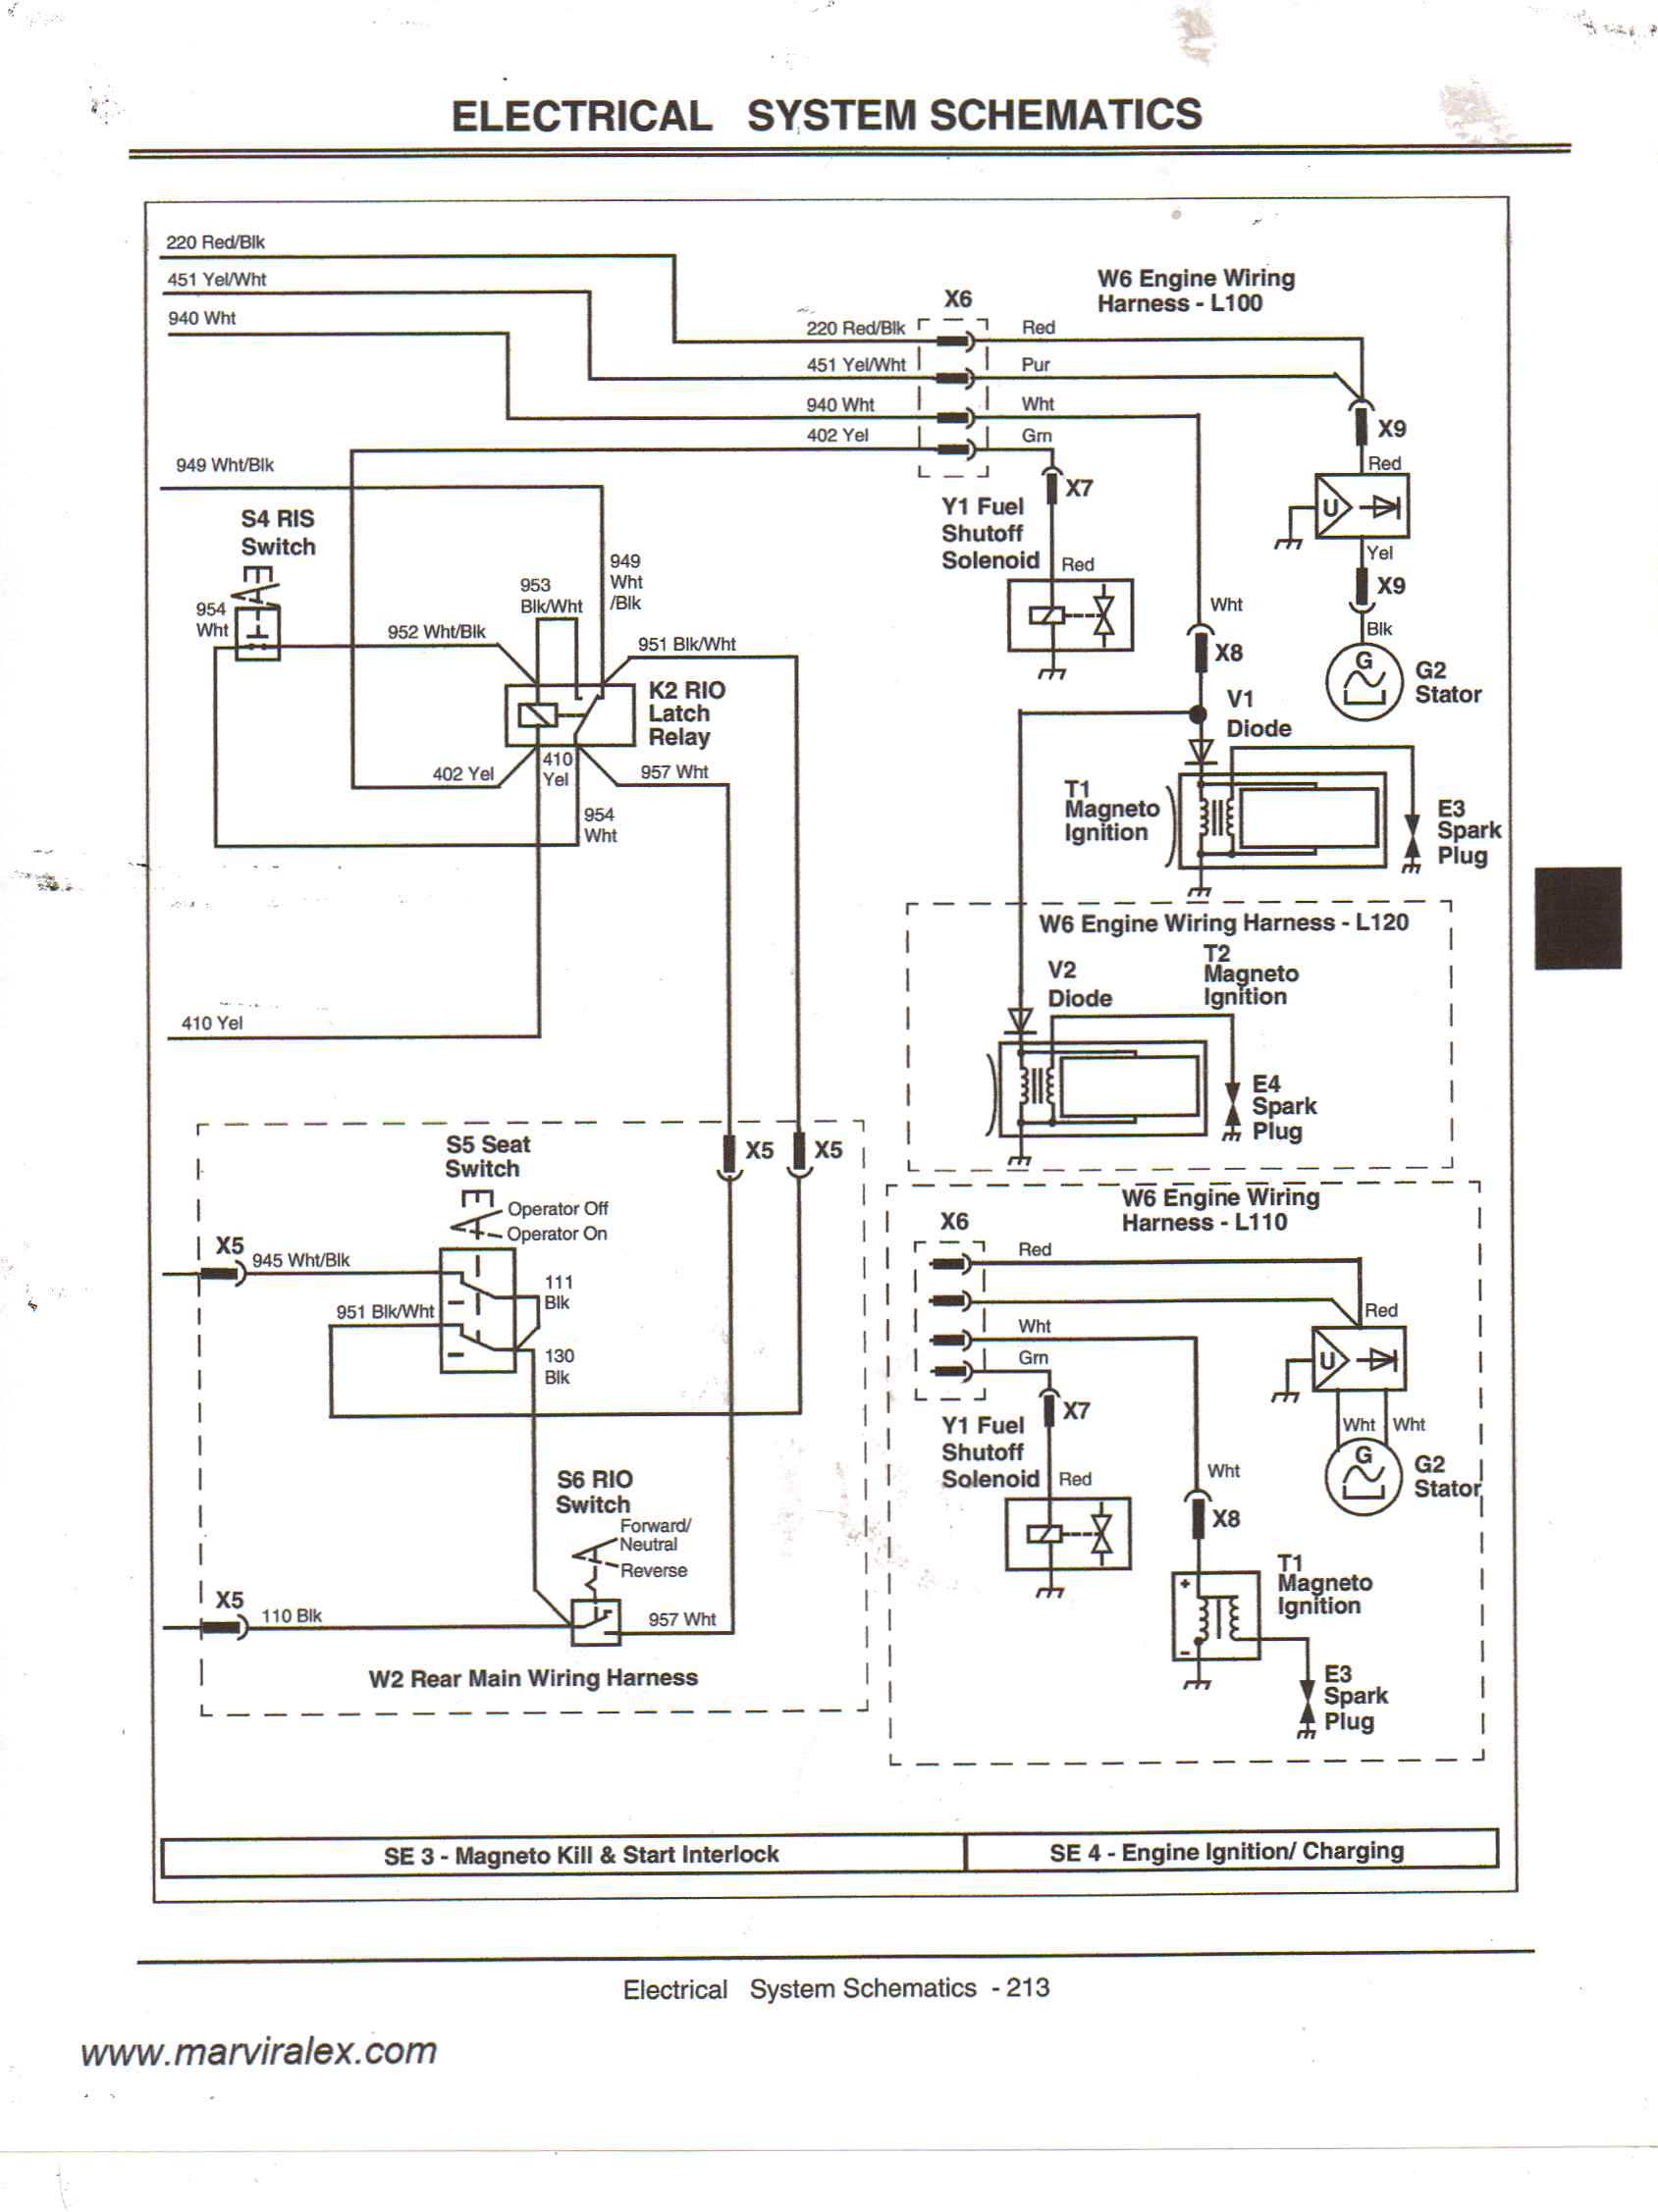 john deere l130 electrical diagram wiring diagram section john deere l120 lawn tractor wiring diagram john deere l130 mower wiring diagram #2